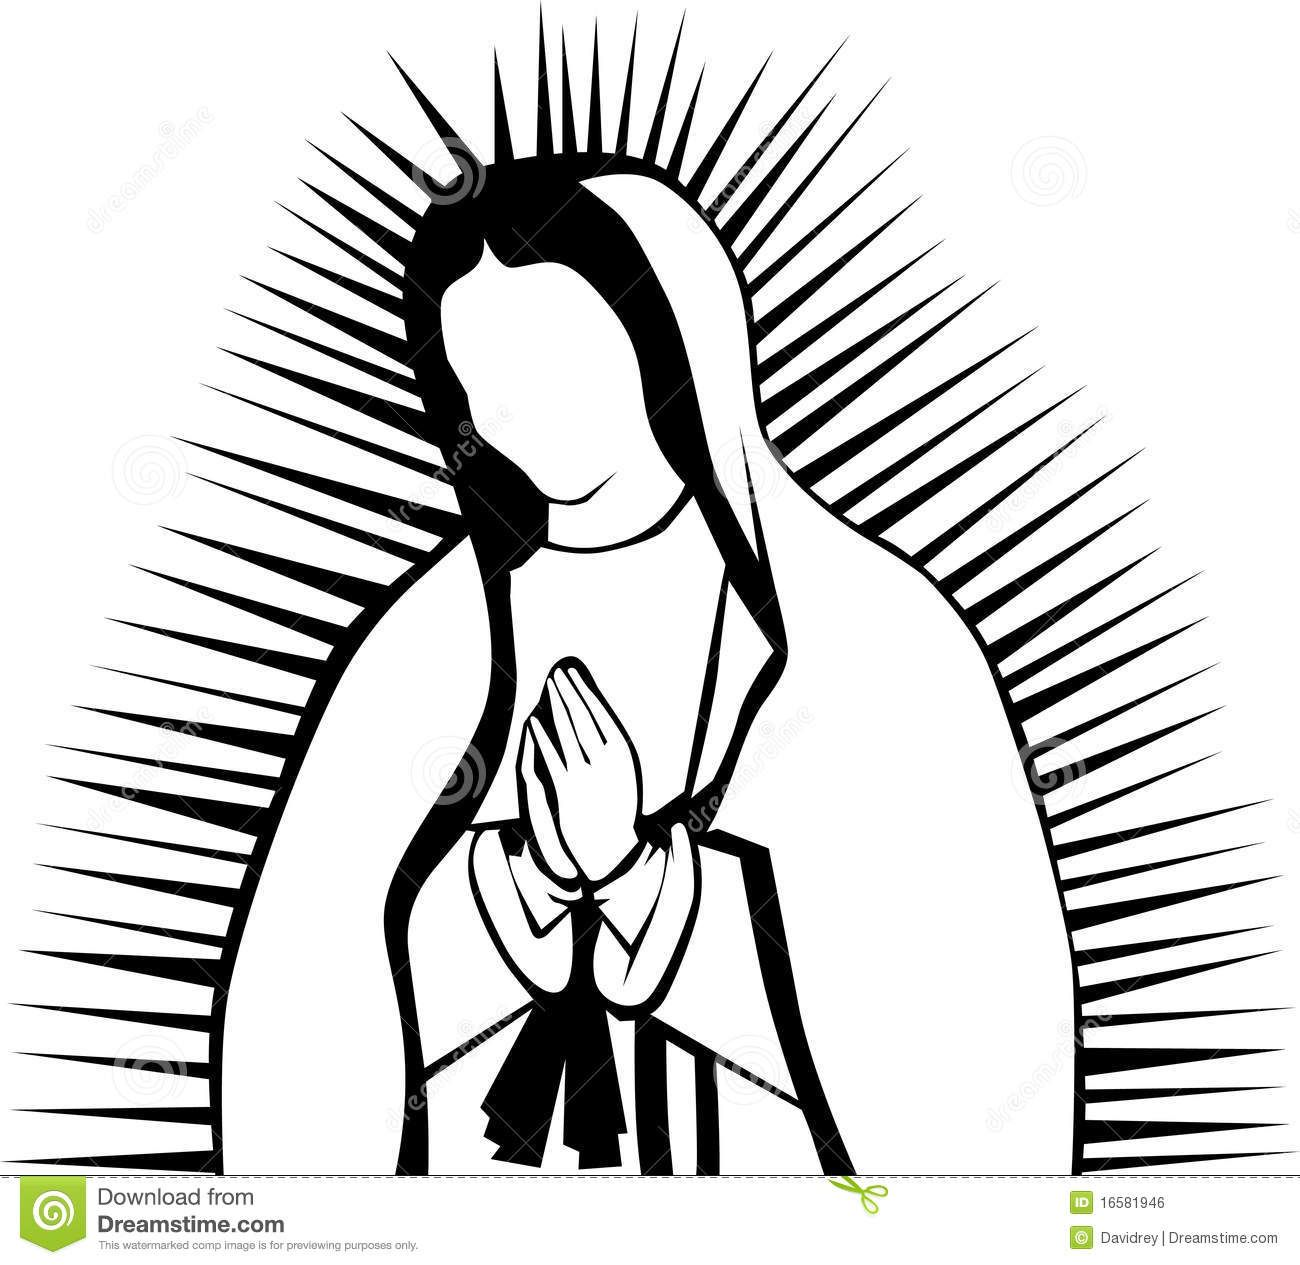 our lady of guadalupe clip art images.